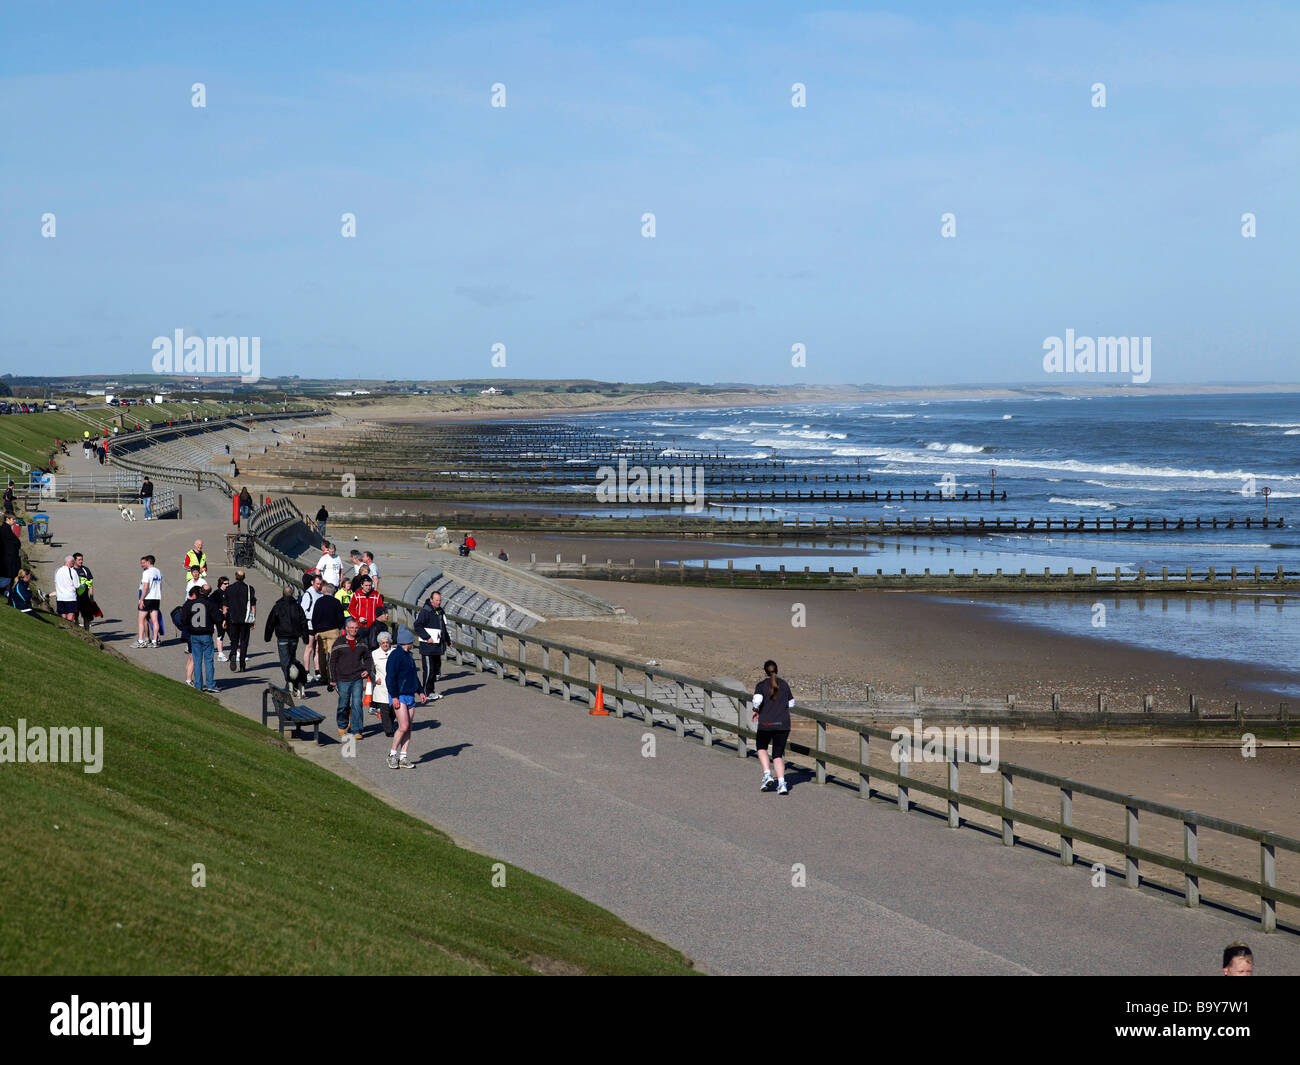 The Esplanade at Aberdeen, North East Scotland - Stock Image